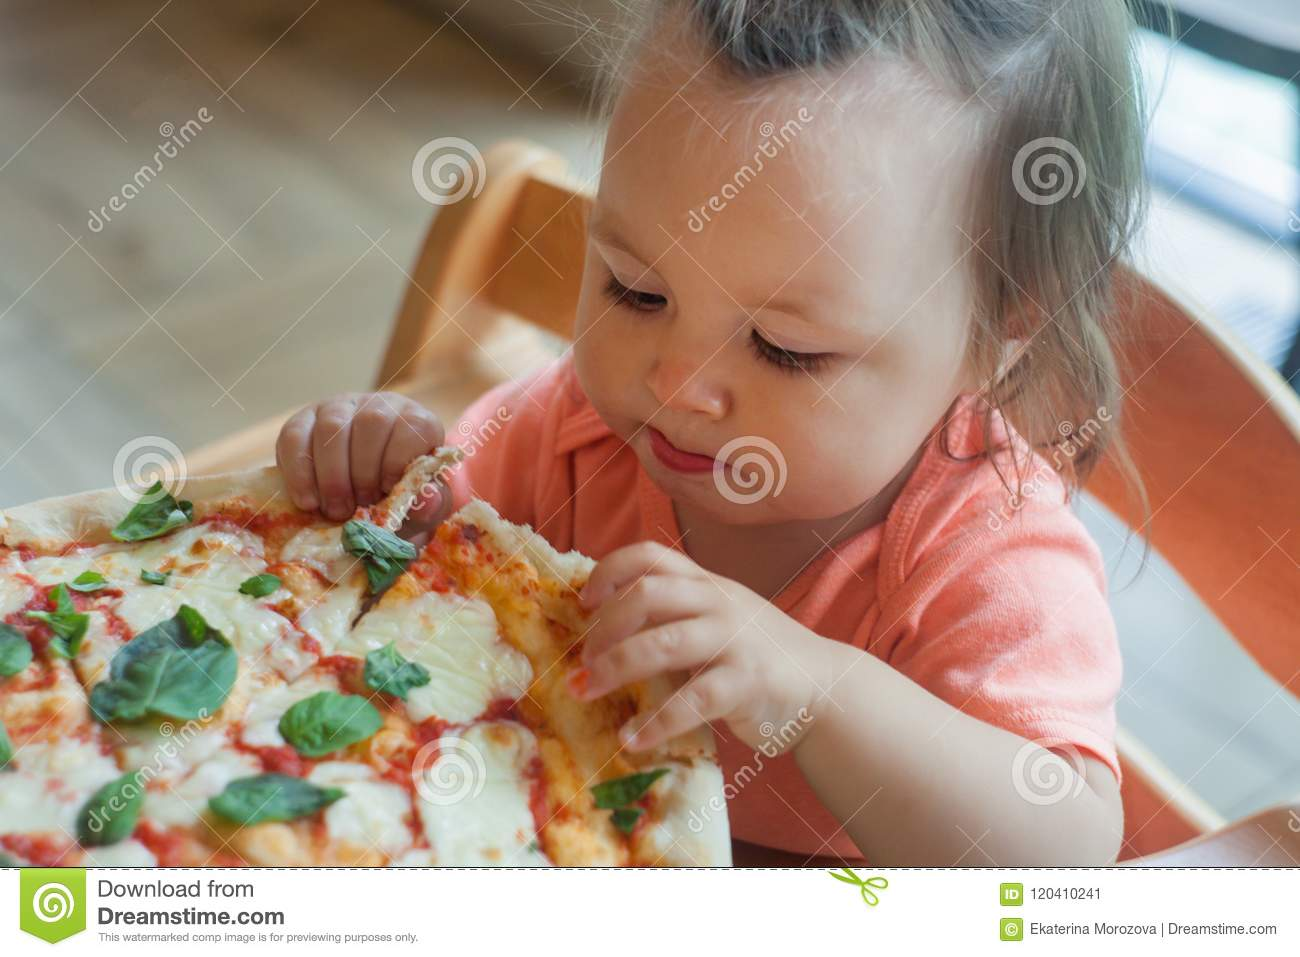 One Year boy sits in director chair in a public cafe indoor and eating italian pizza, children`s fast food.